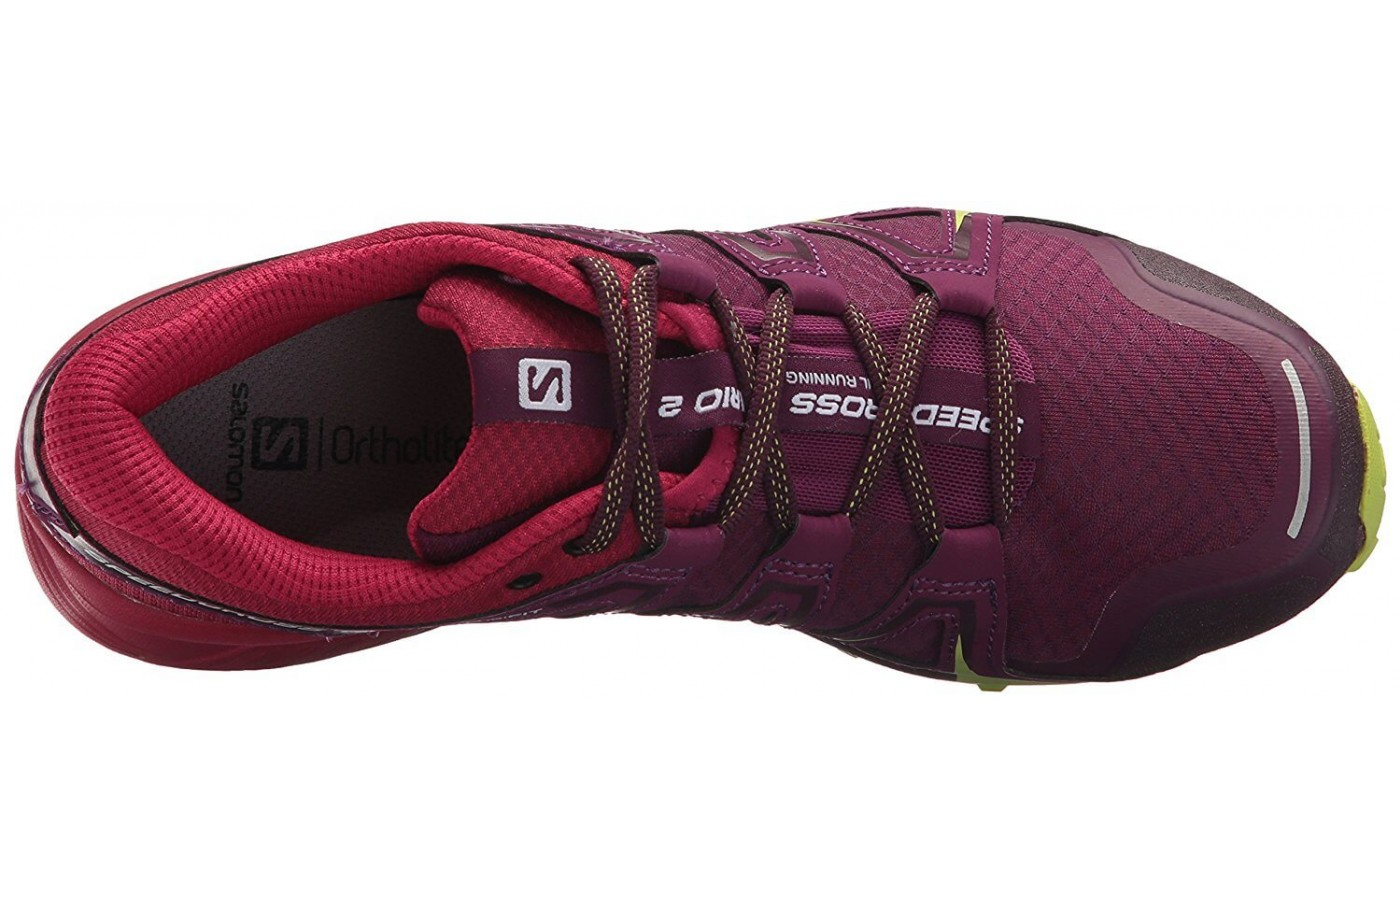 The Salomon Speedcross Vario 2 has an Ortholite sock liner